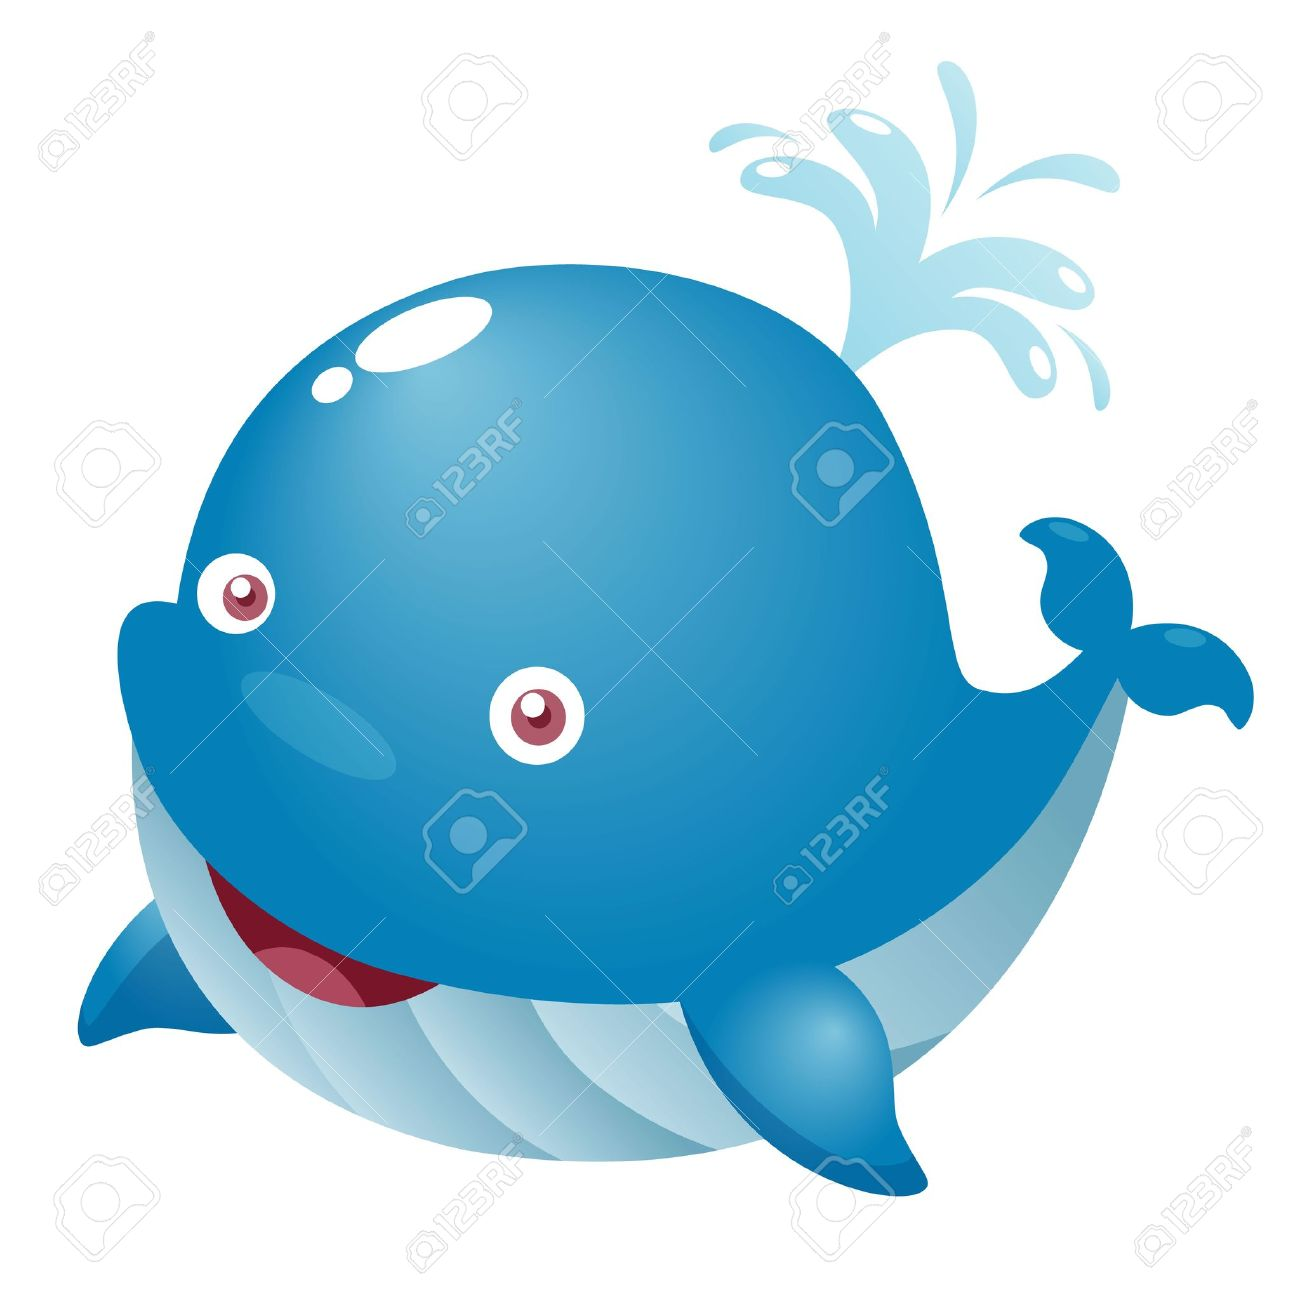 14,368 Whale Stock Vector Illustration And Royalty Free Whale Clipart.